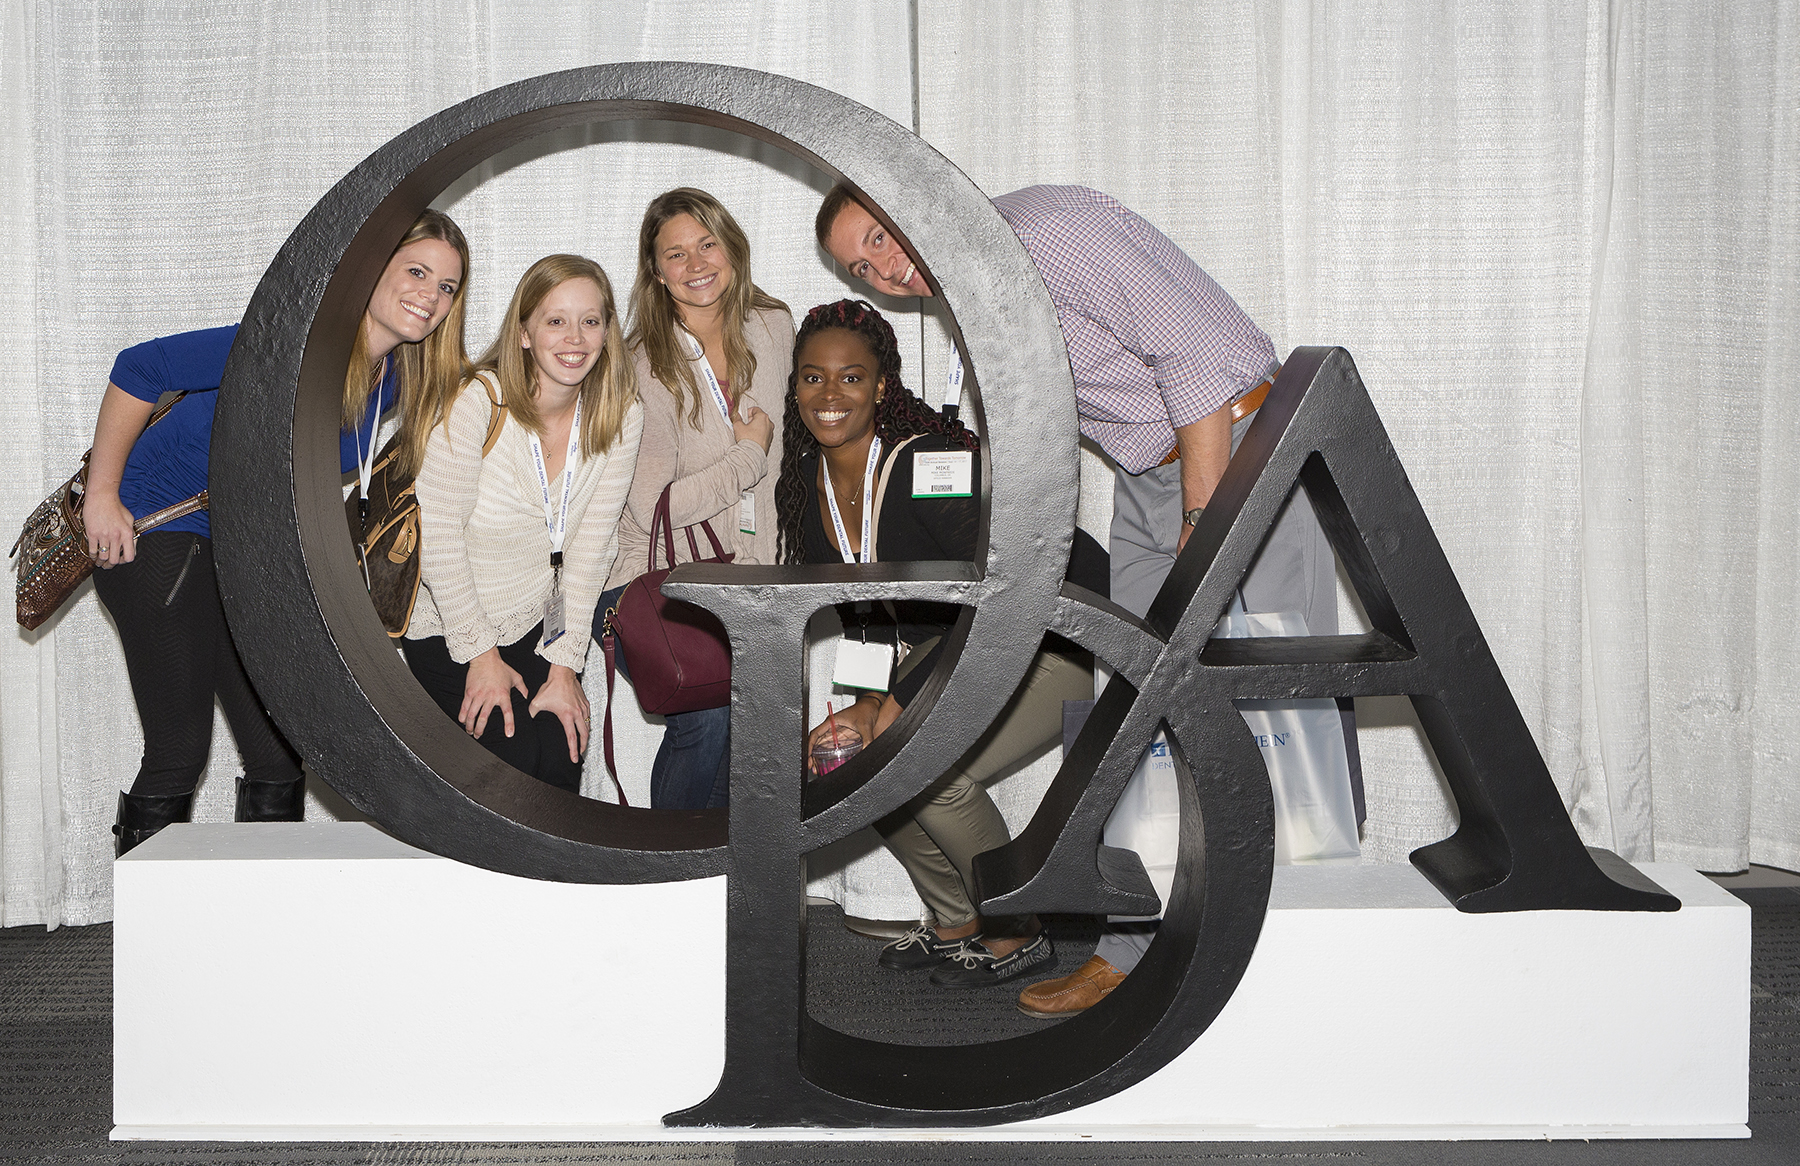 Pictured are Kelly (Dental Assistant – Front Desk), Dr. Monica Monfredi (Dentist), Rachel (EFDA), Ciera (Hygienist), and Mike (Practice Manager) of Monfredi Family Dental in Columbus at the 2017 ODA Annual Session